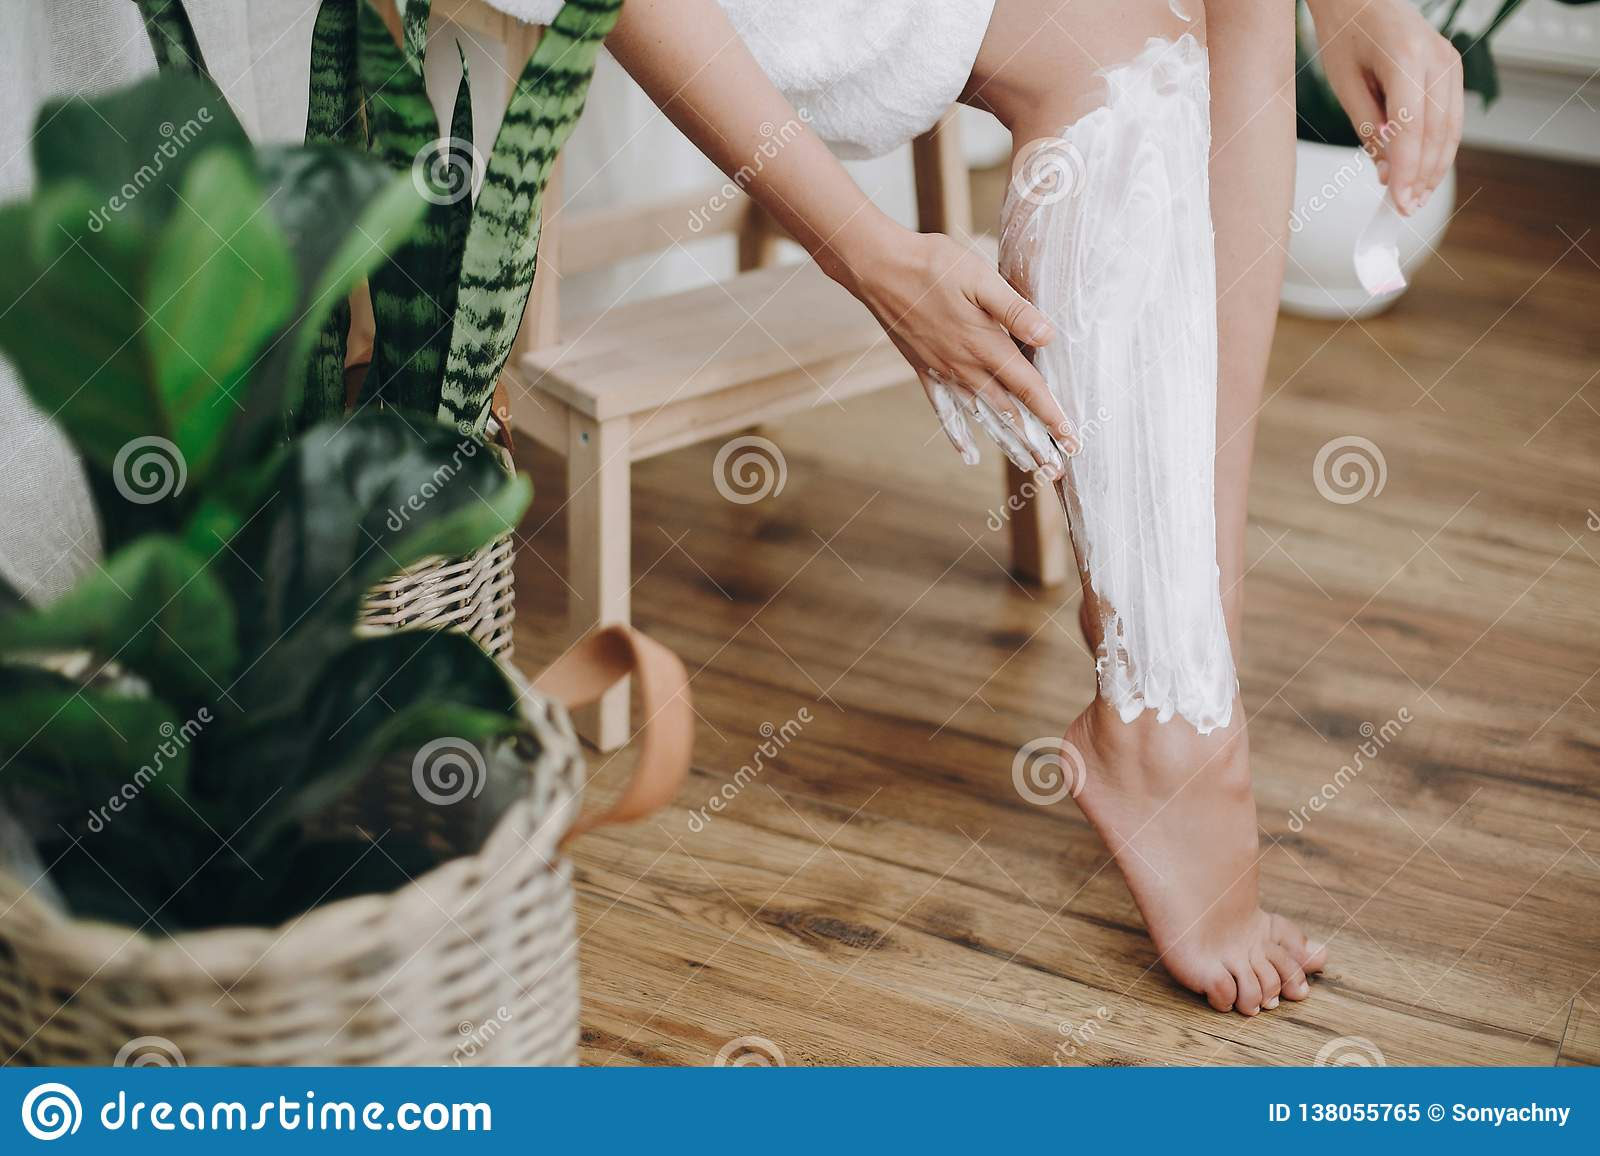 Young woman in white towel applying shaving cream on her legs in home bathroom with green plants. Skin care and wellness concept.